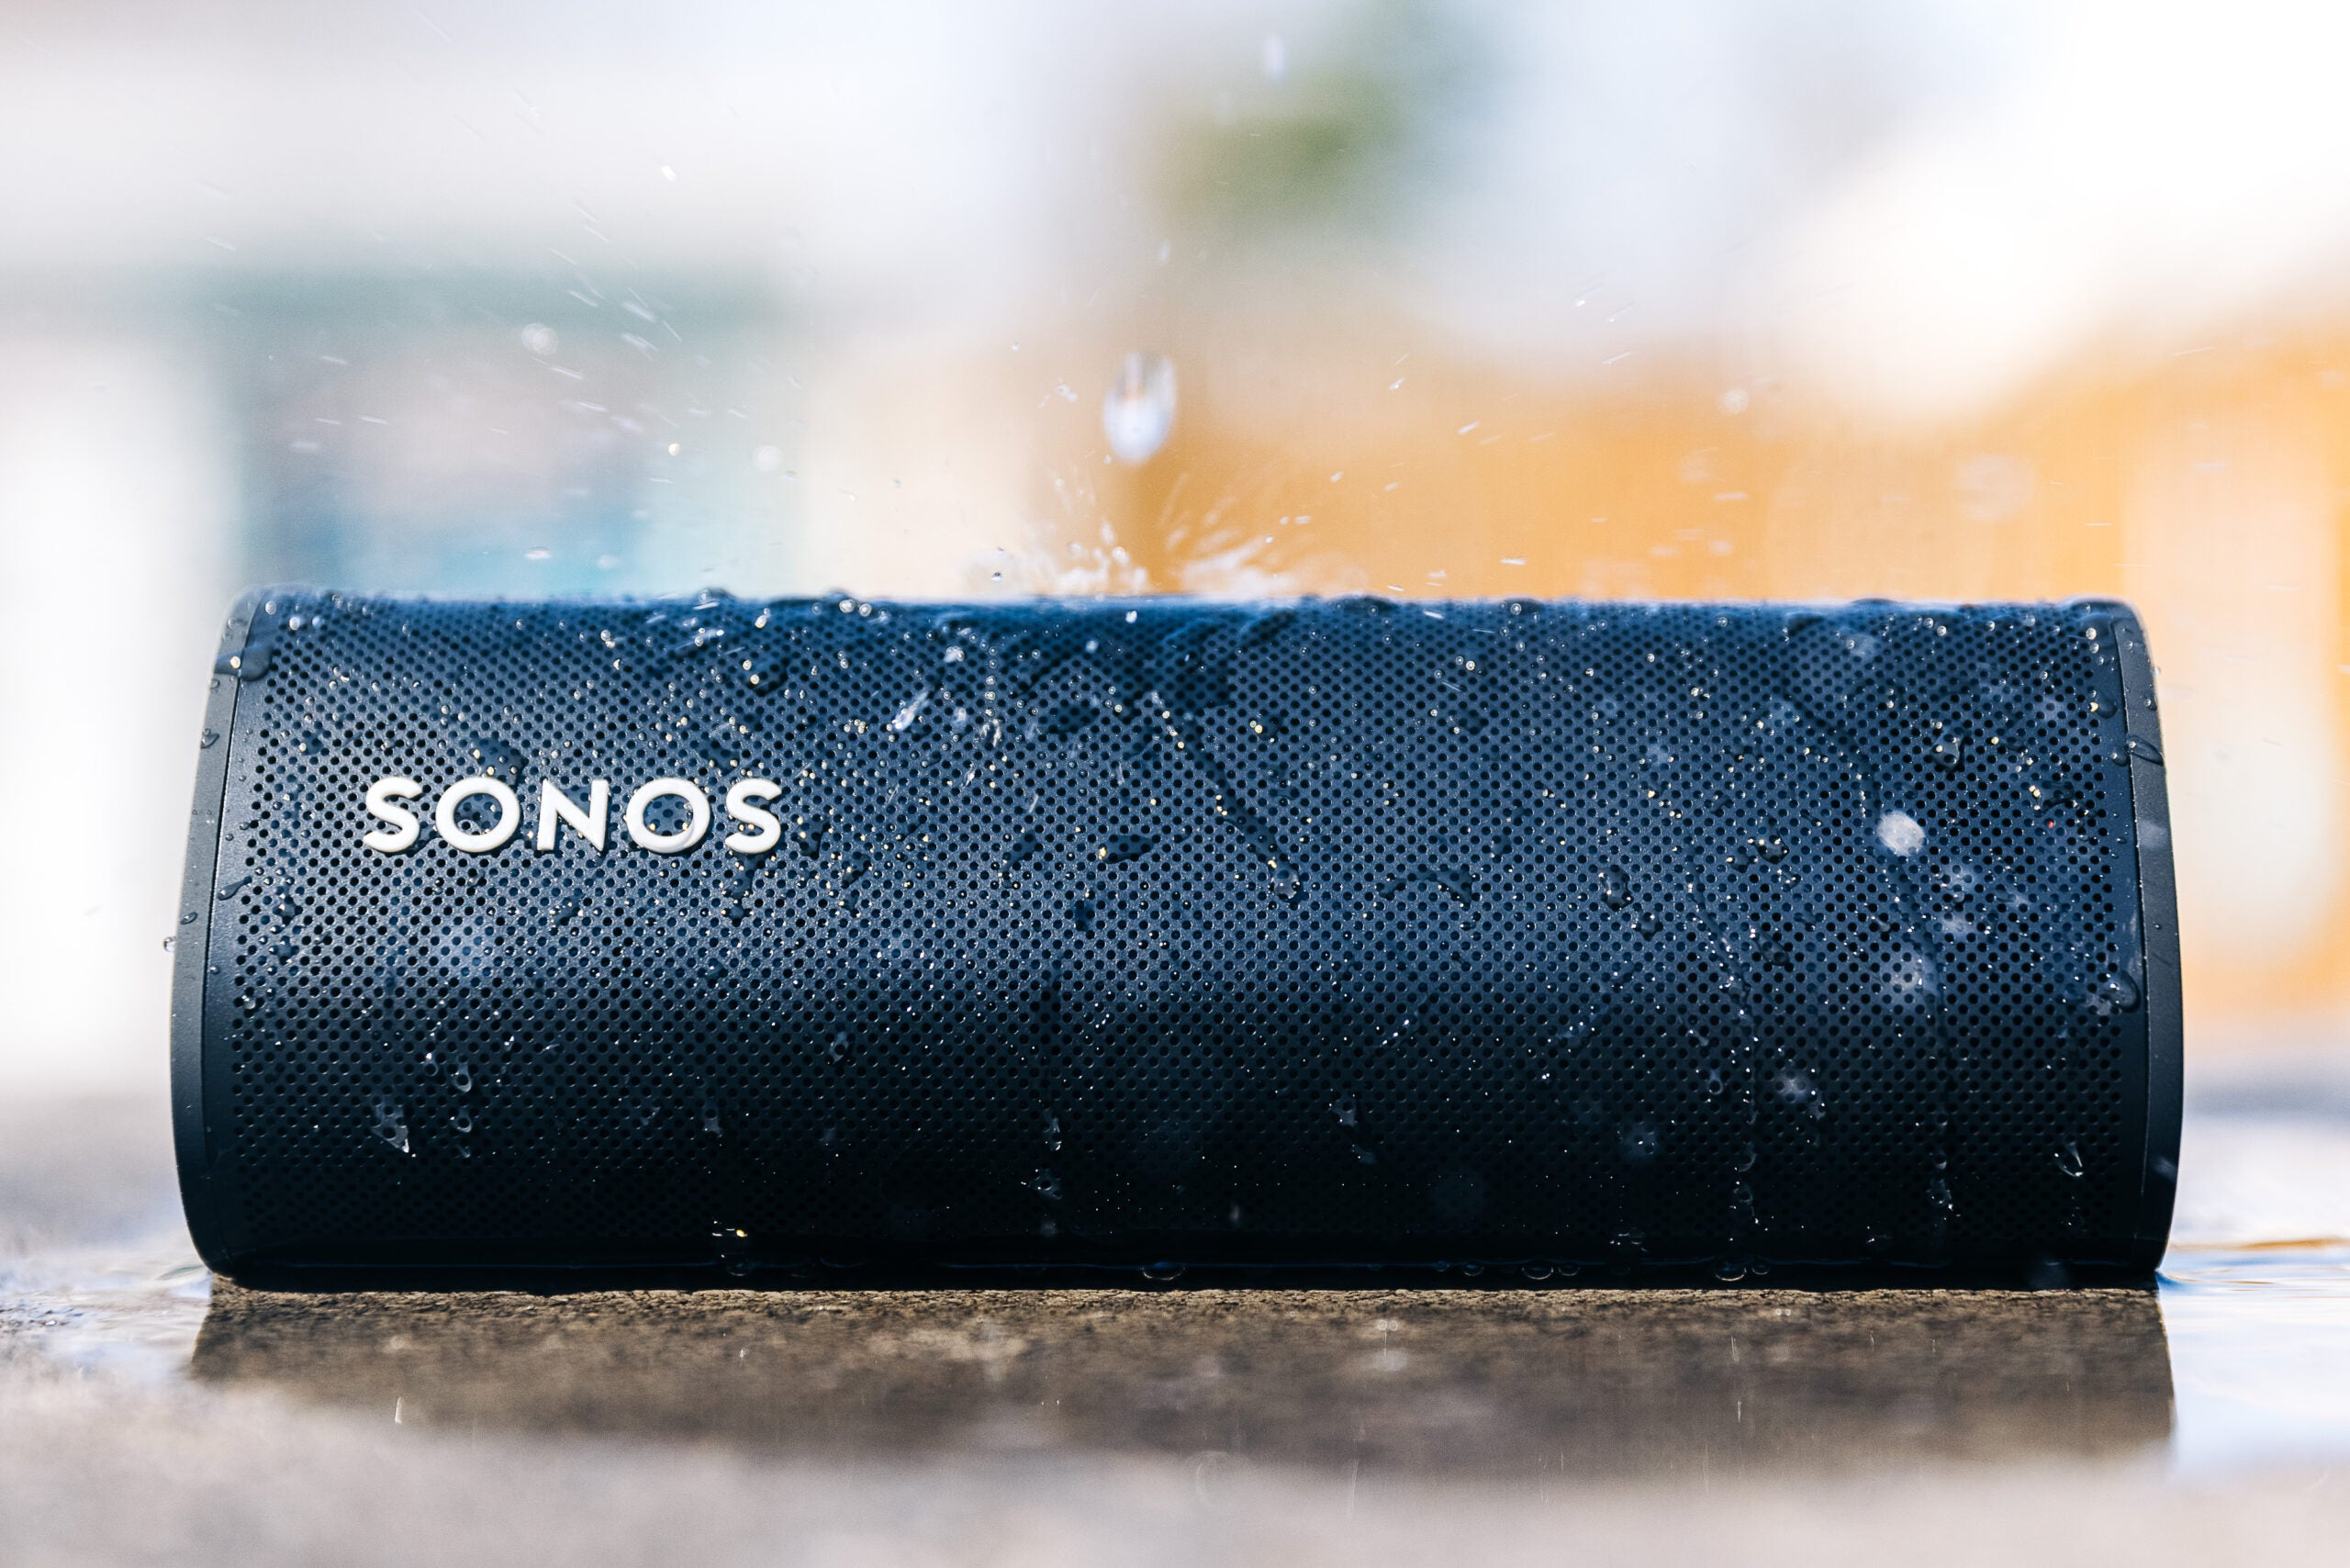 Sonos Roam review: Great sound, inside and out